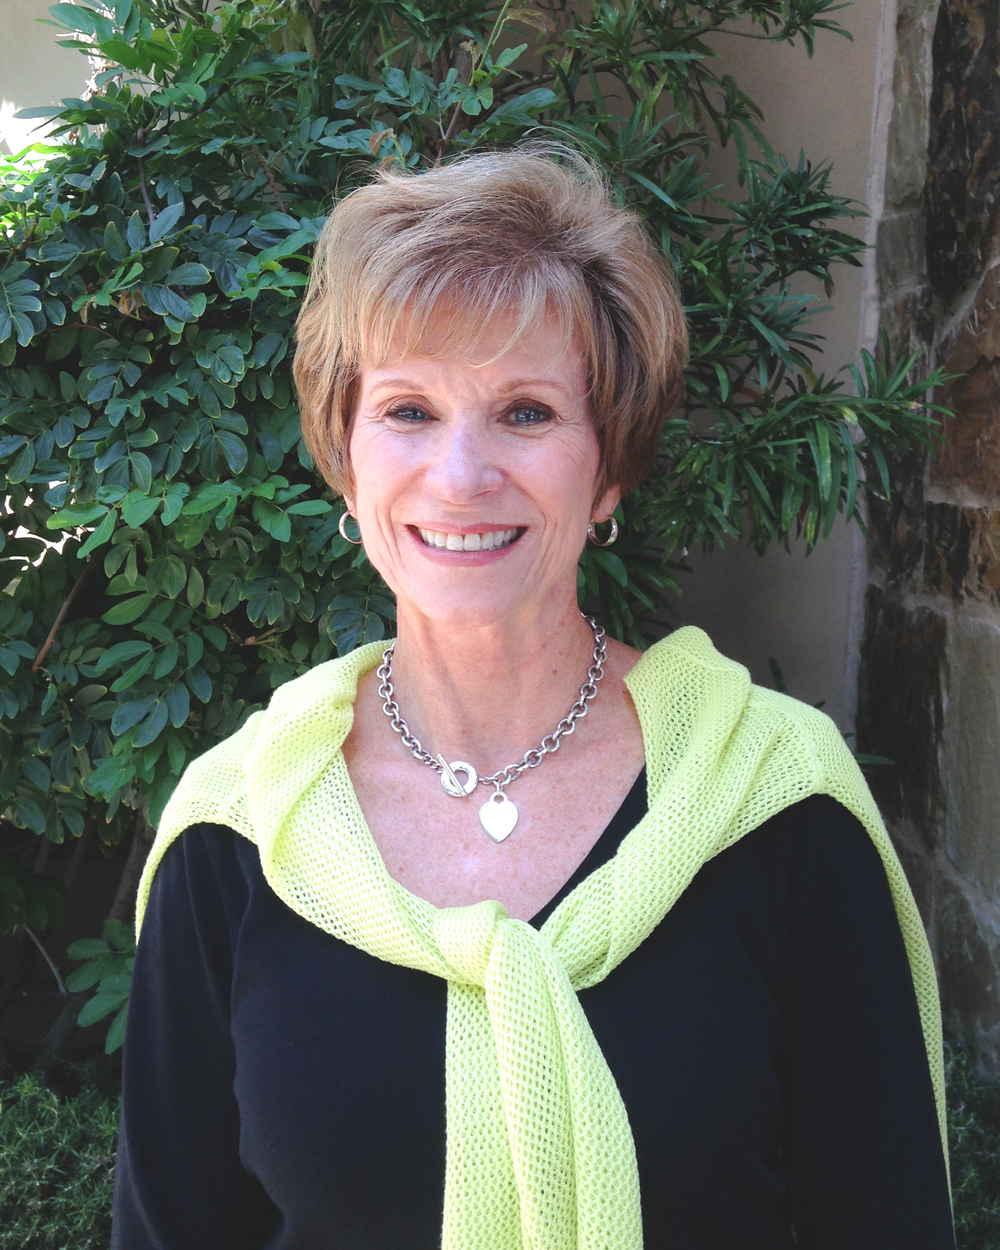 Jill Austin   Jill and her husband live in Colorado. She is a Christian Speaker, Retreat Leader, Bible Study teacher and mentor of women. She attends Christ Our Hope Anglican Church in Timnath, Colorado and serves on The Springs Retreat —Arizona team .